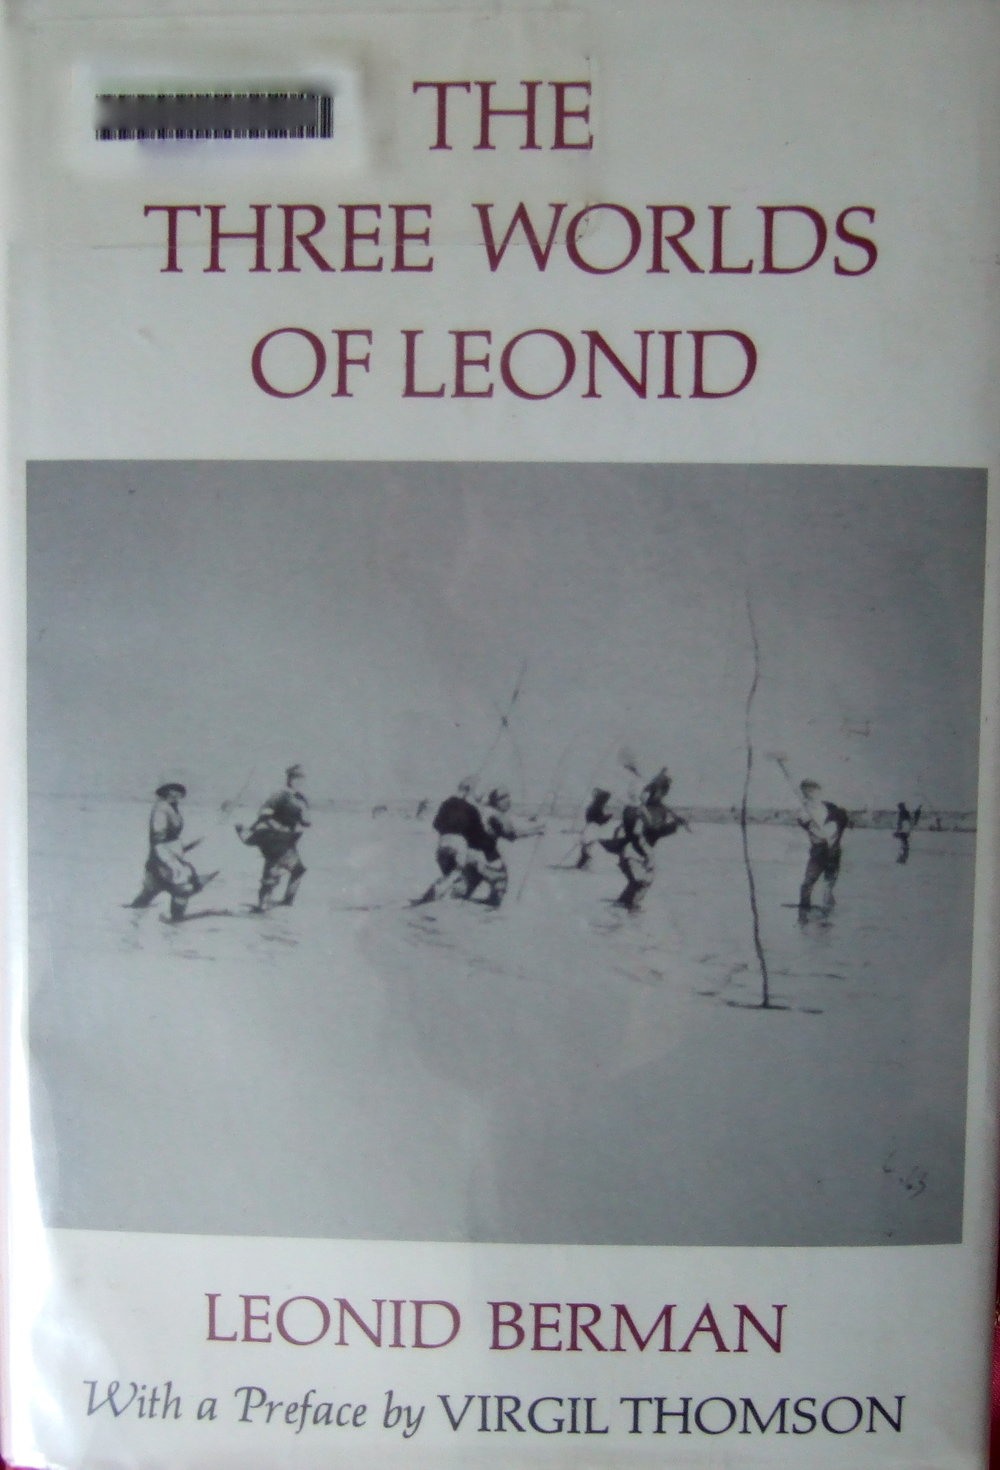 Three worlds of Leonid